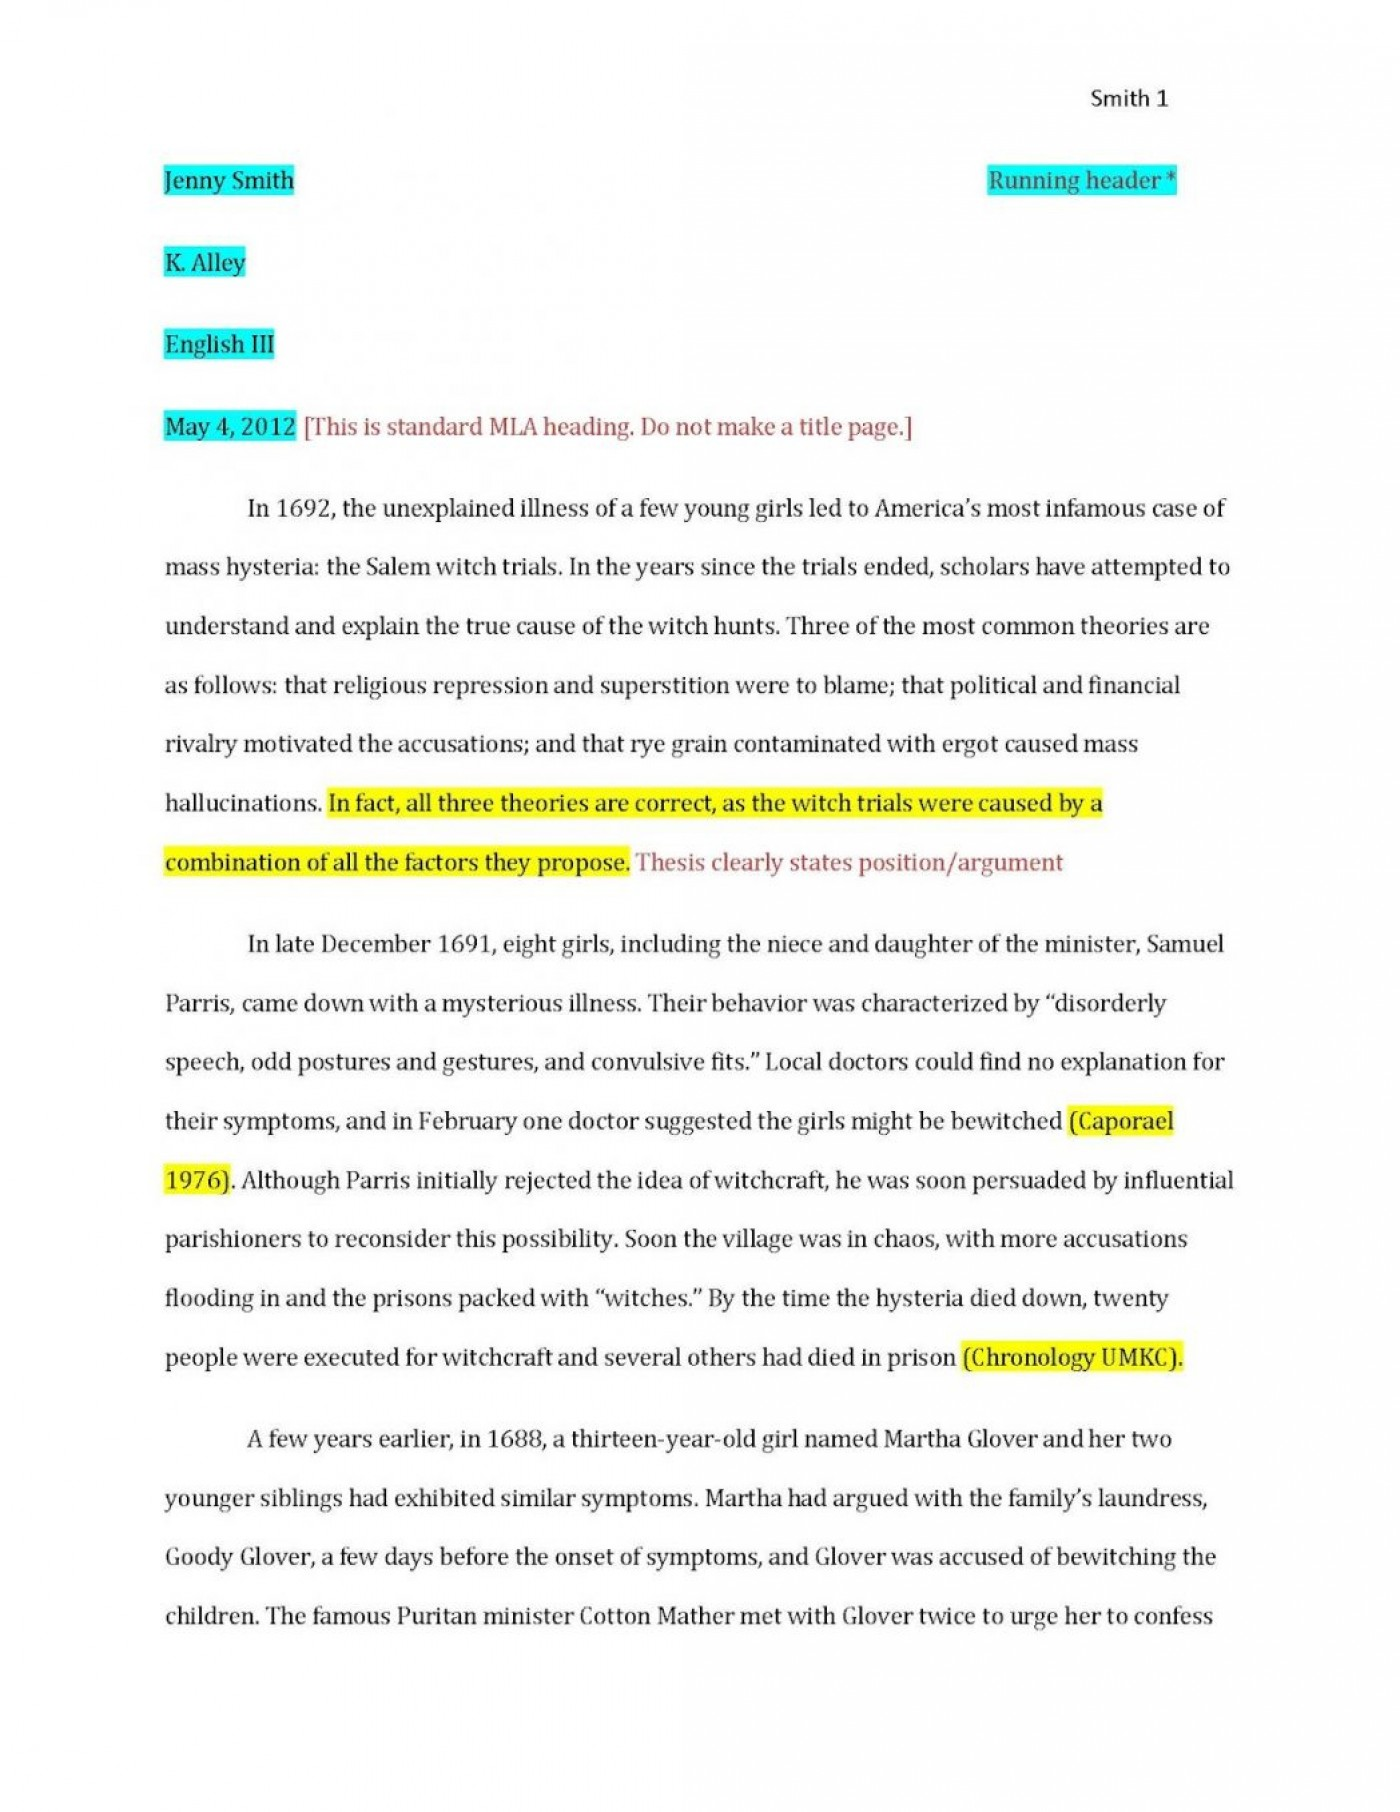 002 Mla Format Essay Generator Author Date References System Ready Set Automaticpaper P 1048x1357 Wondrous Funny Free Software Bot 1400